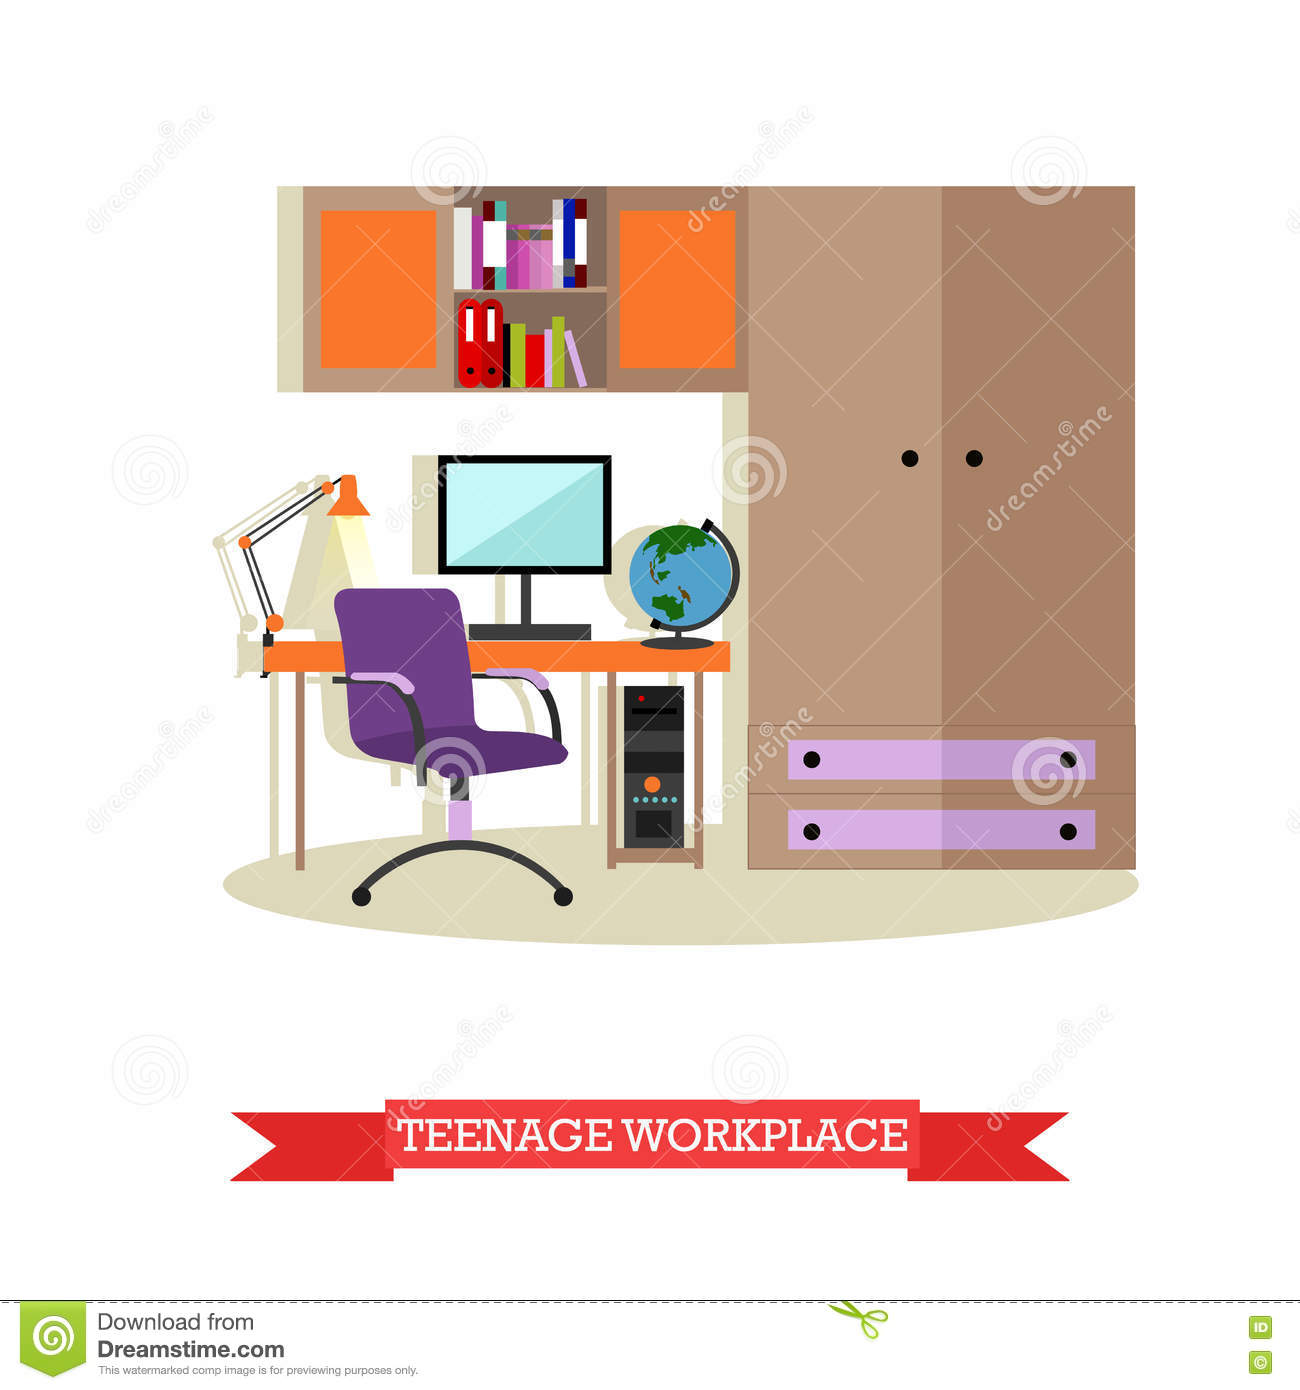 Teenager bedroom interior objects in flat style vector for Room design vector